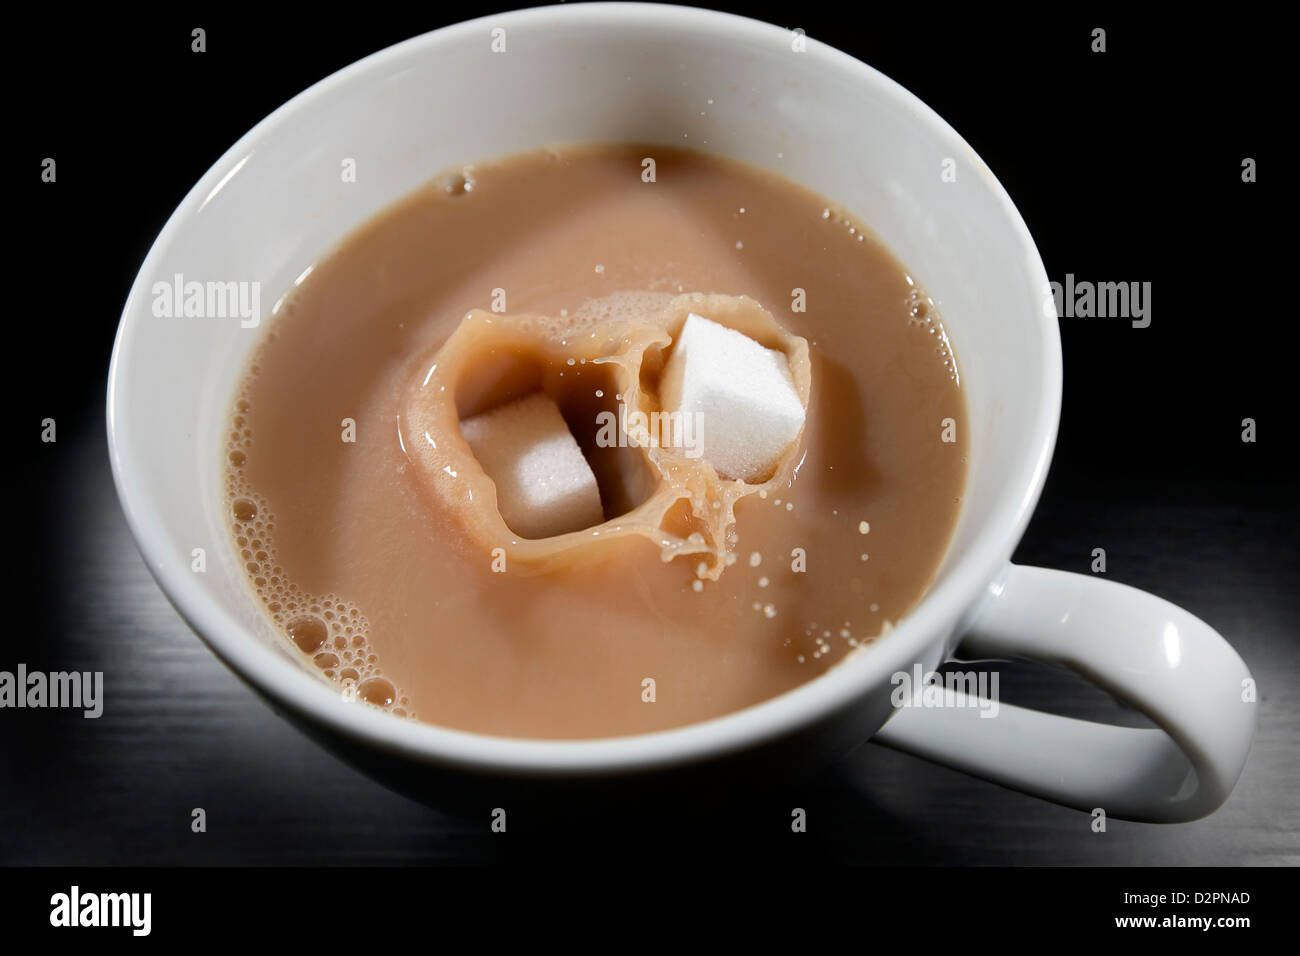 Lumps of white sugar being dropped into a hot cup of tea. - Stock Image